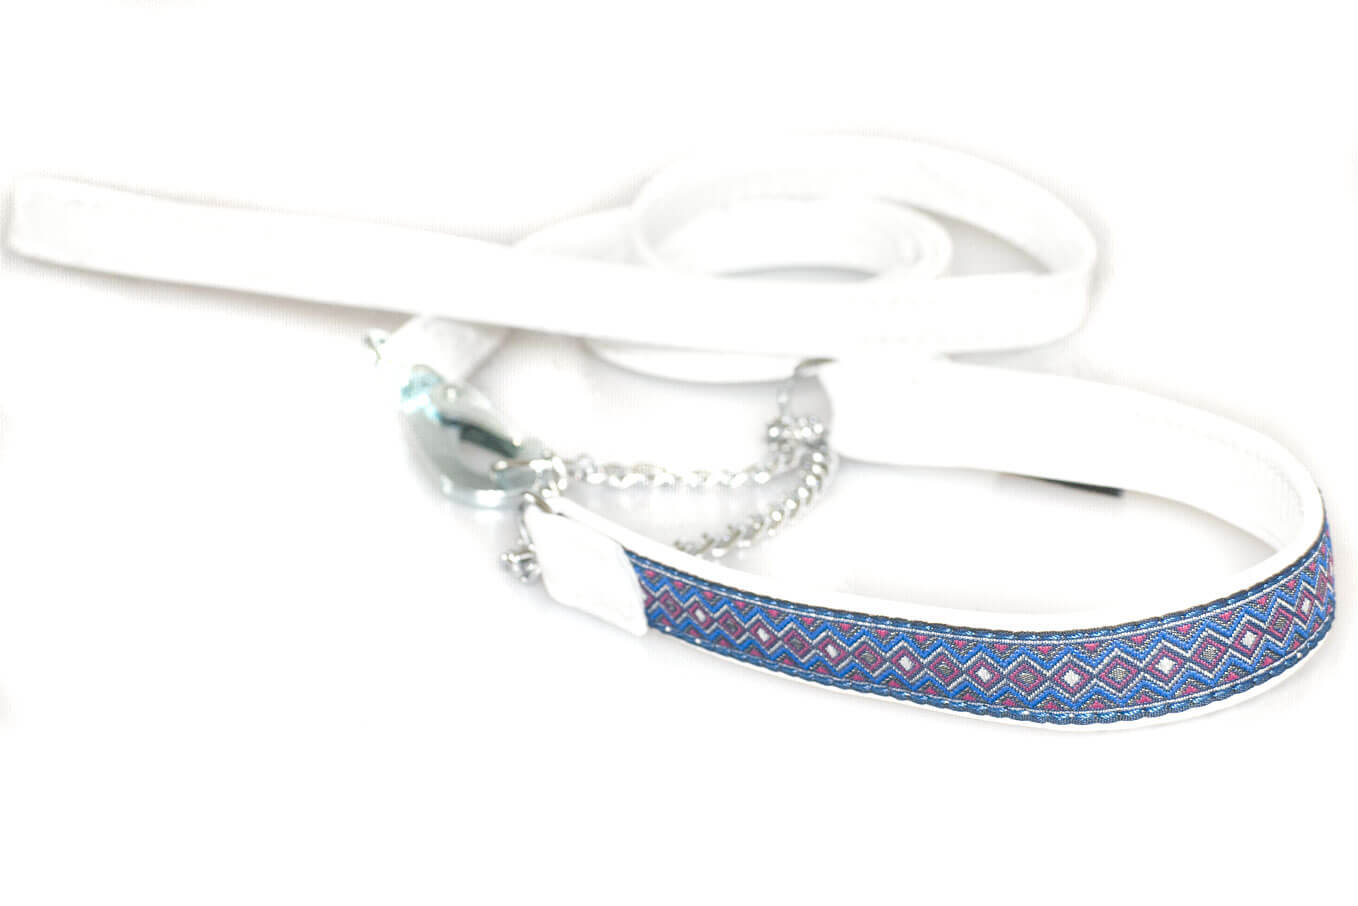 White nappa leather double stitched lead to match ribbon collars